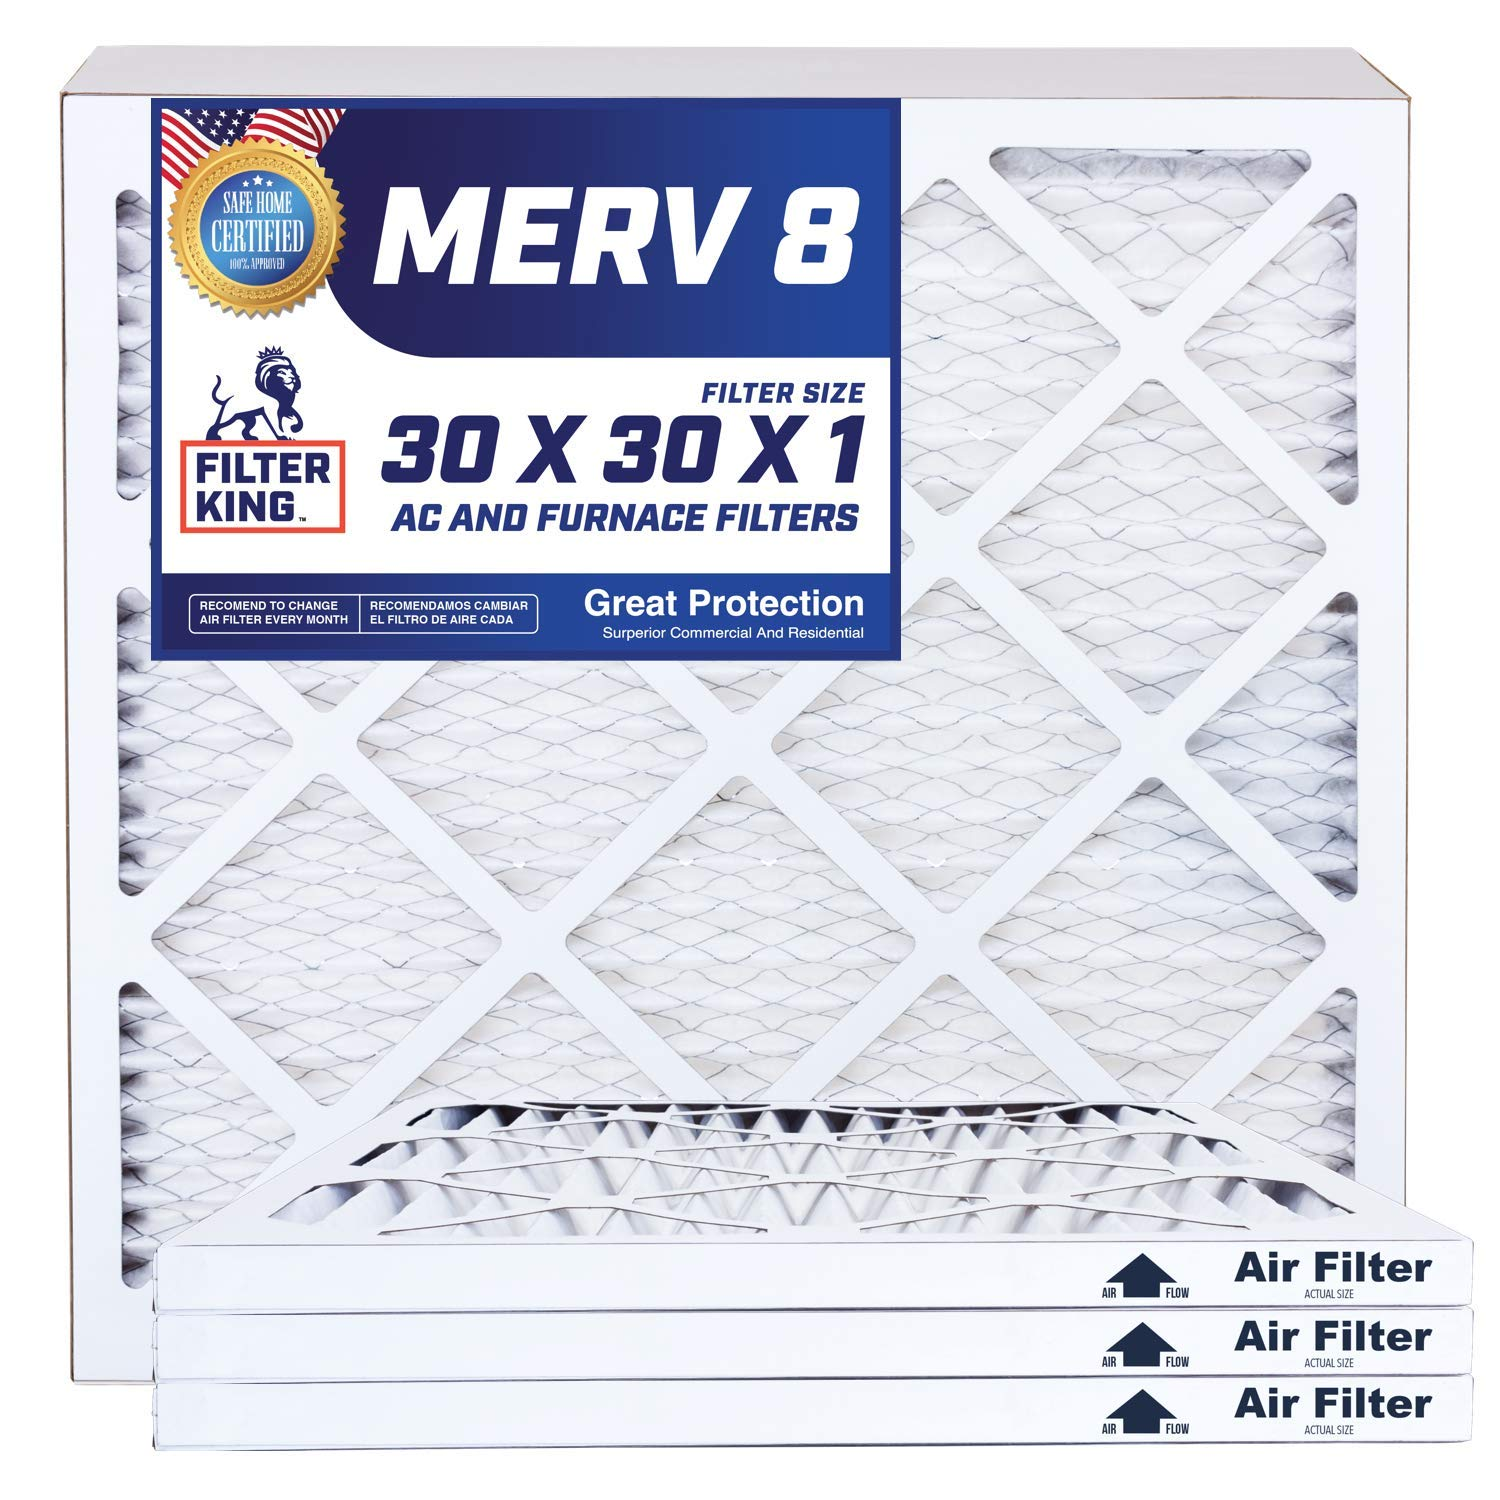 Best 30x30x1 Air Filters | 4 Pack | MERV 8 HVAC Pleated AC Furnace Filters, Protection Against Mold and Pollen, Allergen Reduction, Increases Air Quality | Actual Size 29.5x29.5x1